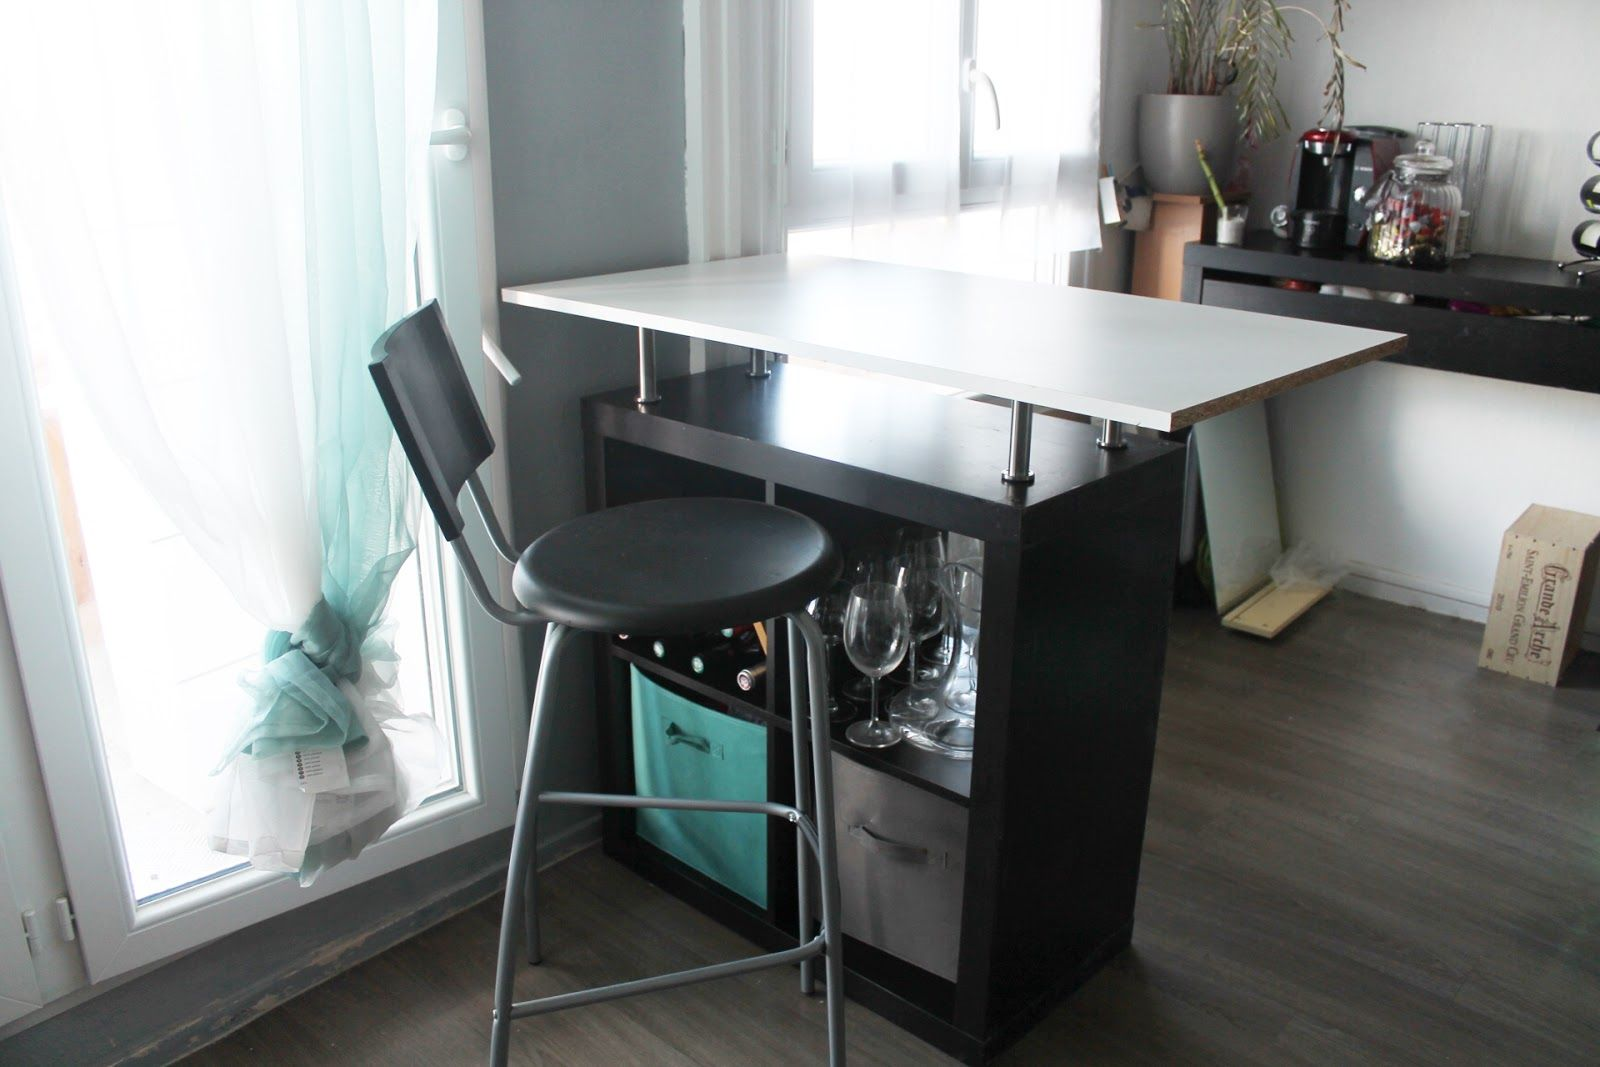 Transformer un meuble ikea en bar bureau pinterest - Cuisine meuble ikea ...